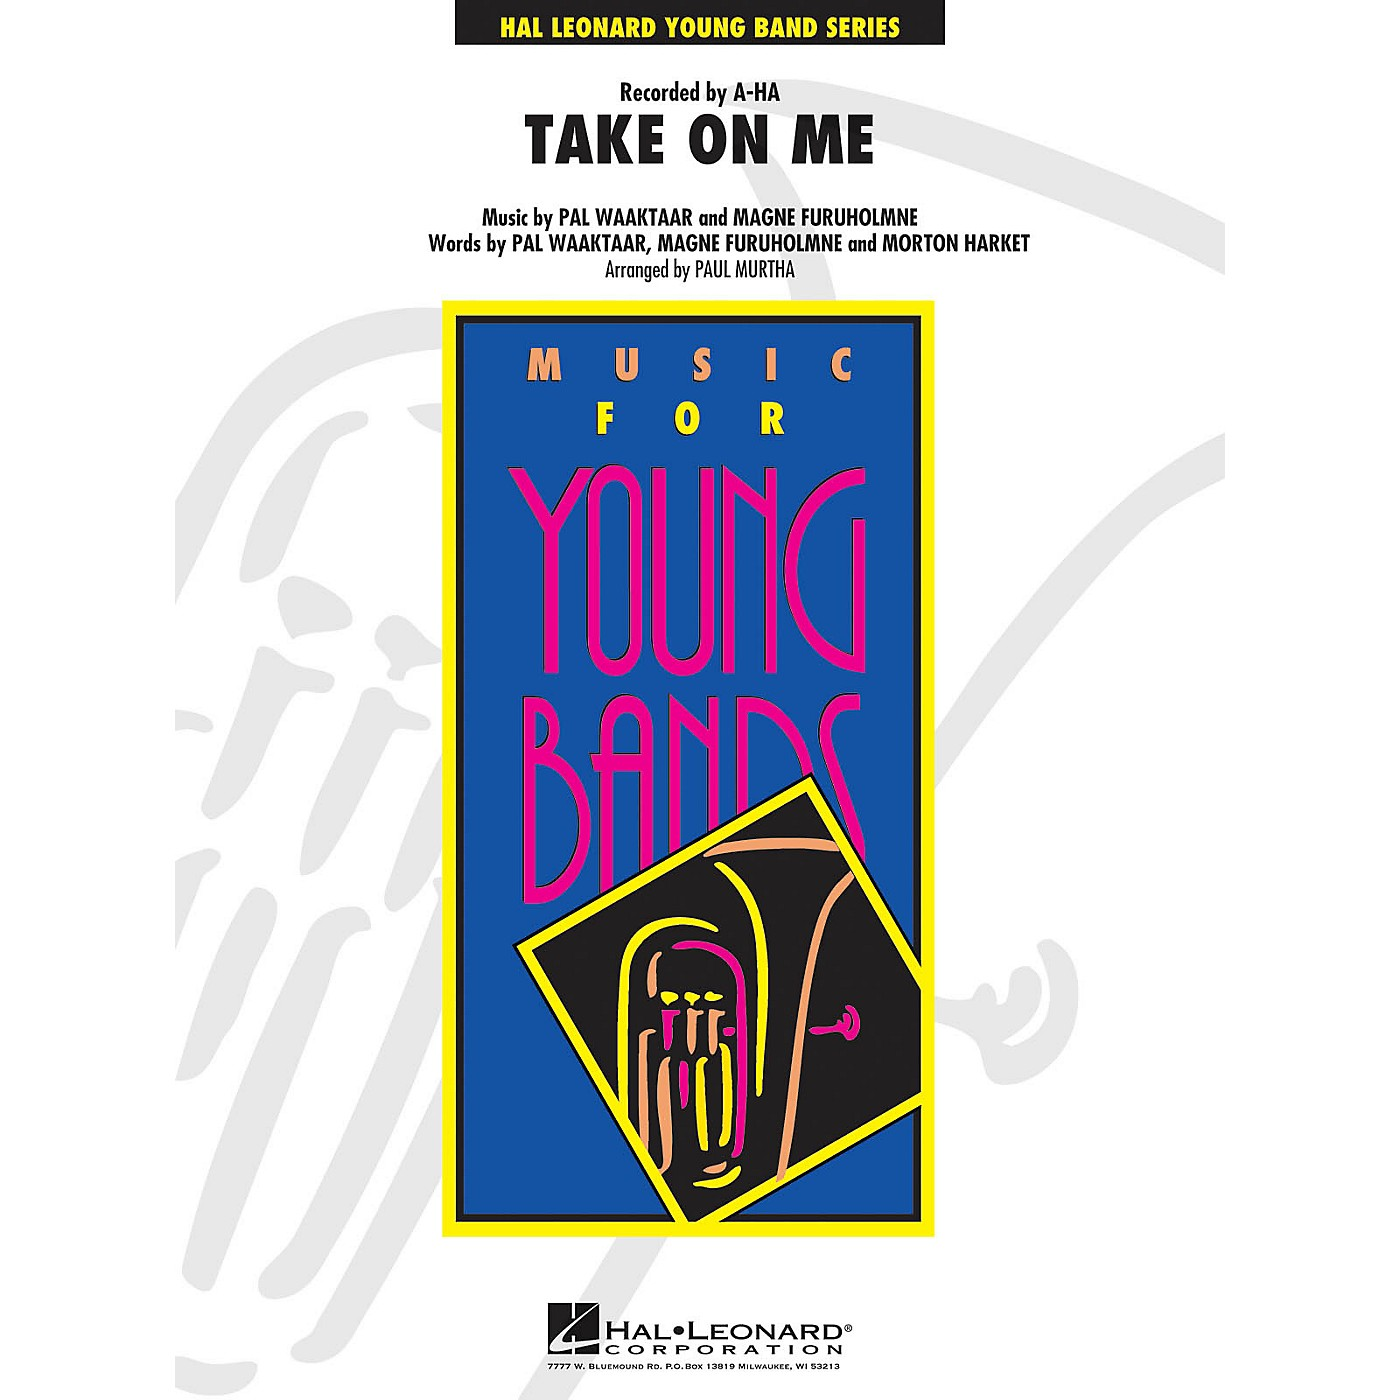 Hal Leonard Take On Me - Young Concert Band Series Level 3 arranged by  Paul Murtha thumbnail